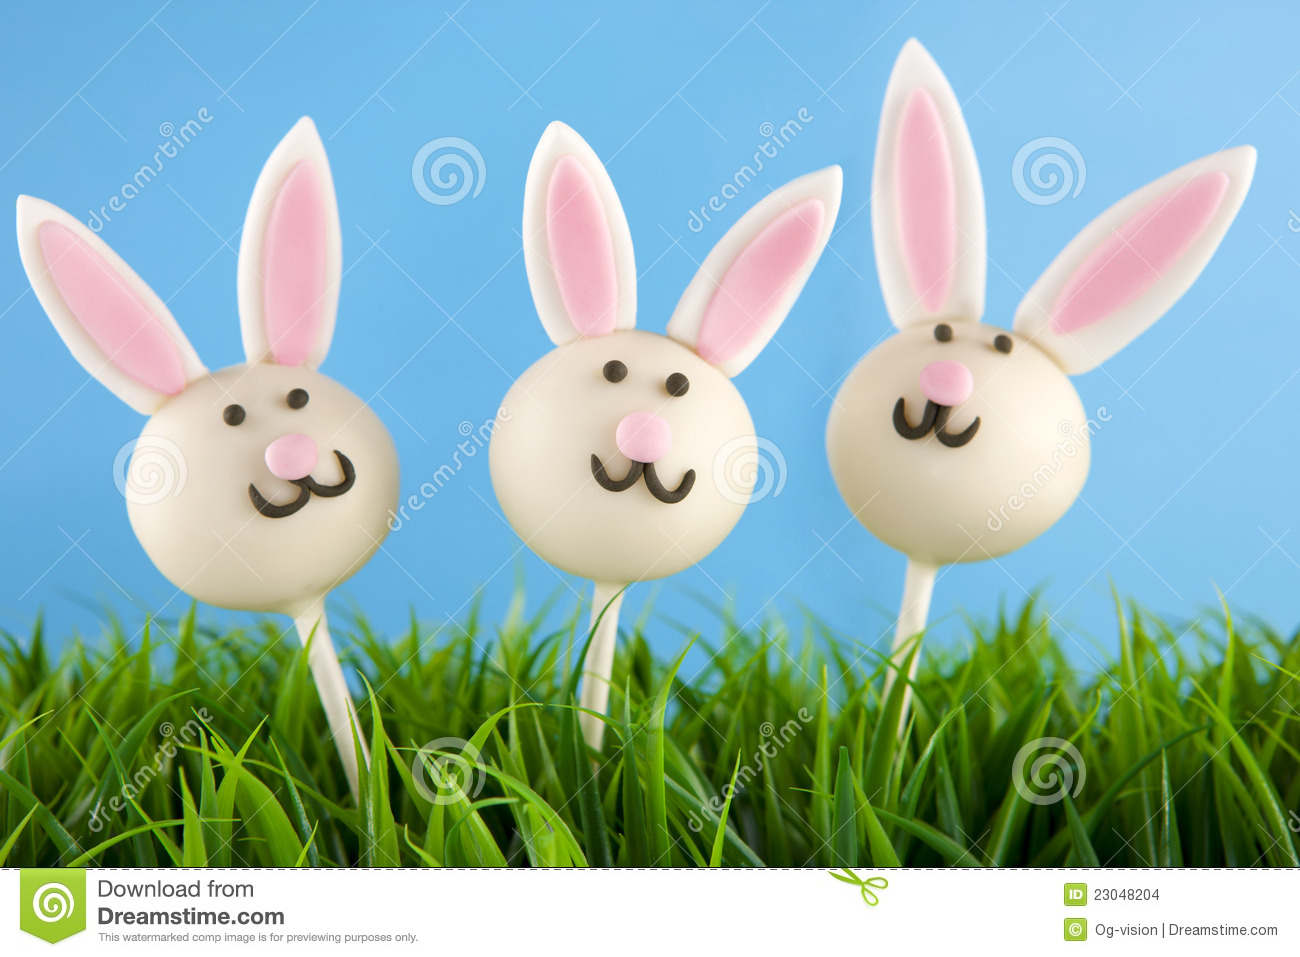 Easter Bunny Cake Pops Stock Images - Image: 23048204